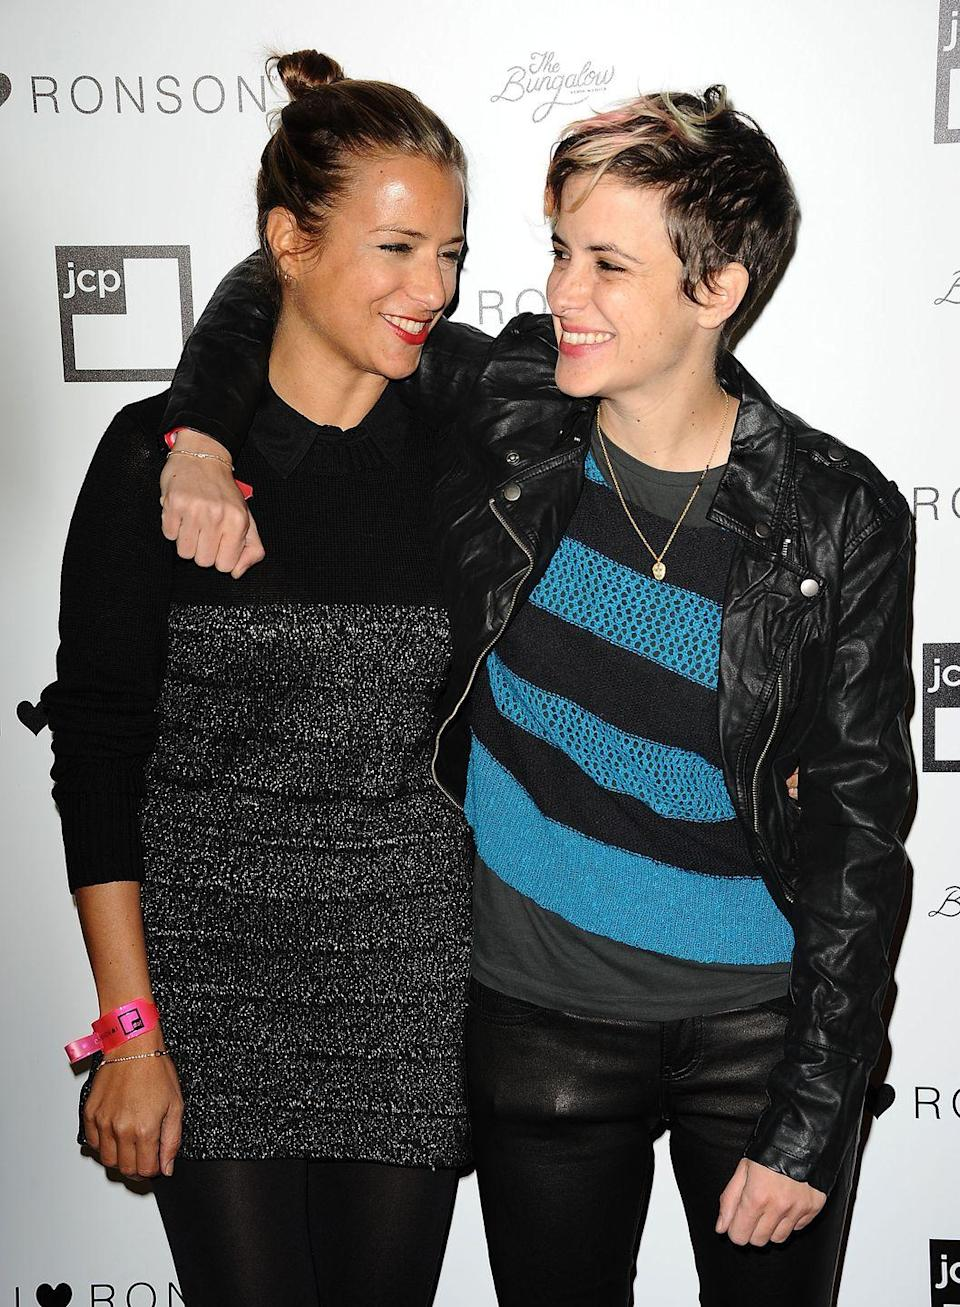 <p>While these two look totally different, they're both extremely hip: Charlotte is a fashion designer and Samantha is a DJ.</p>